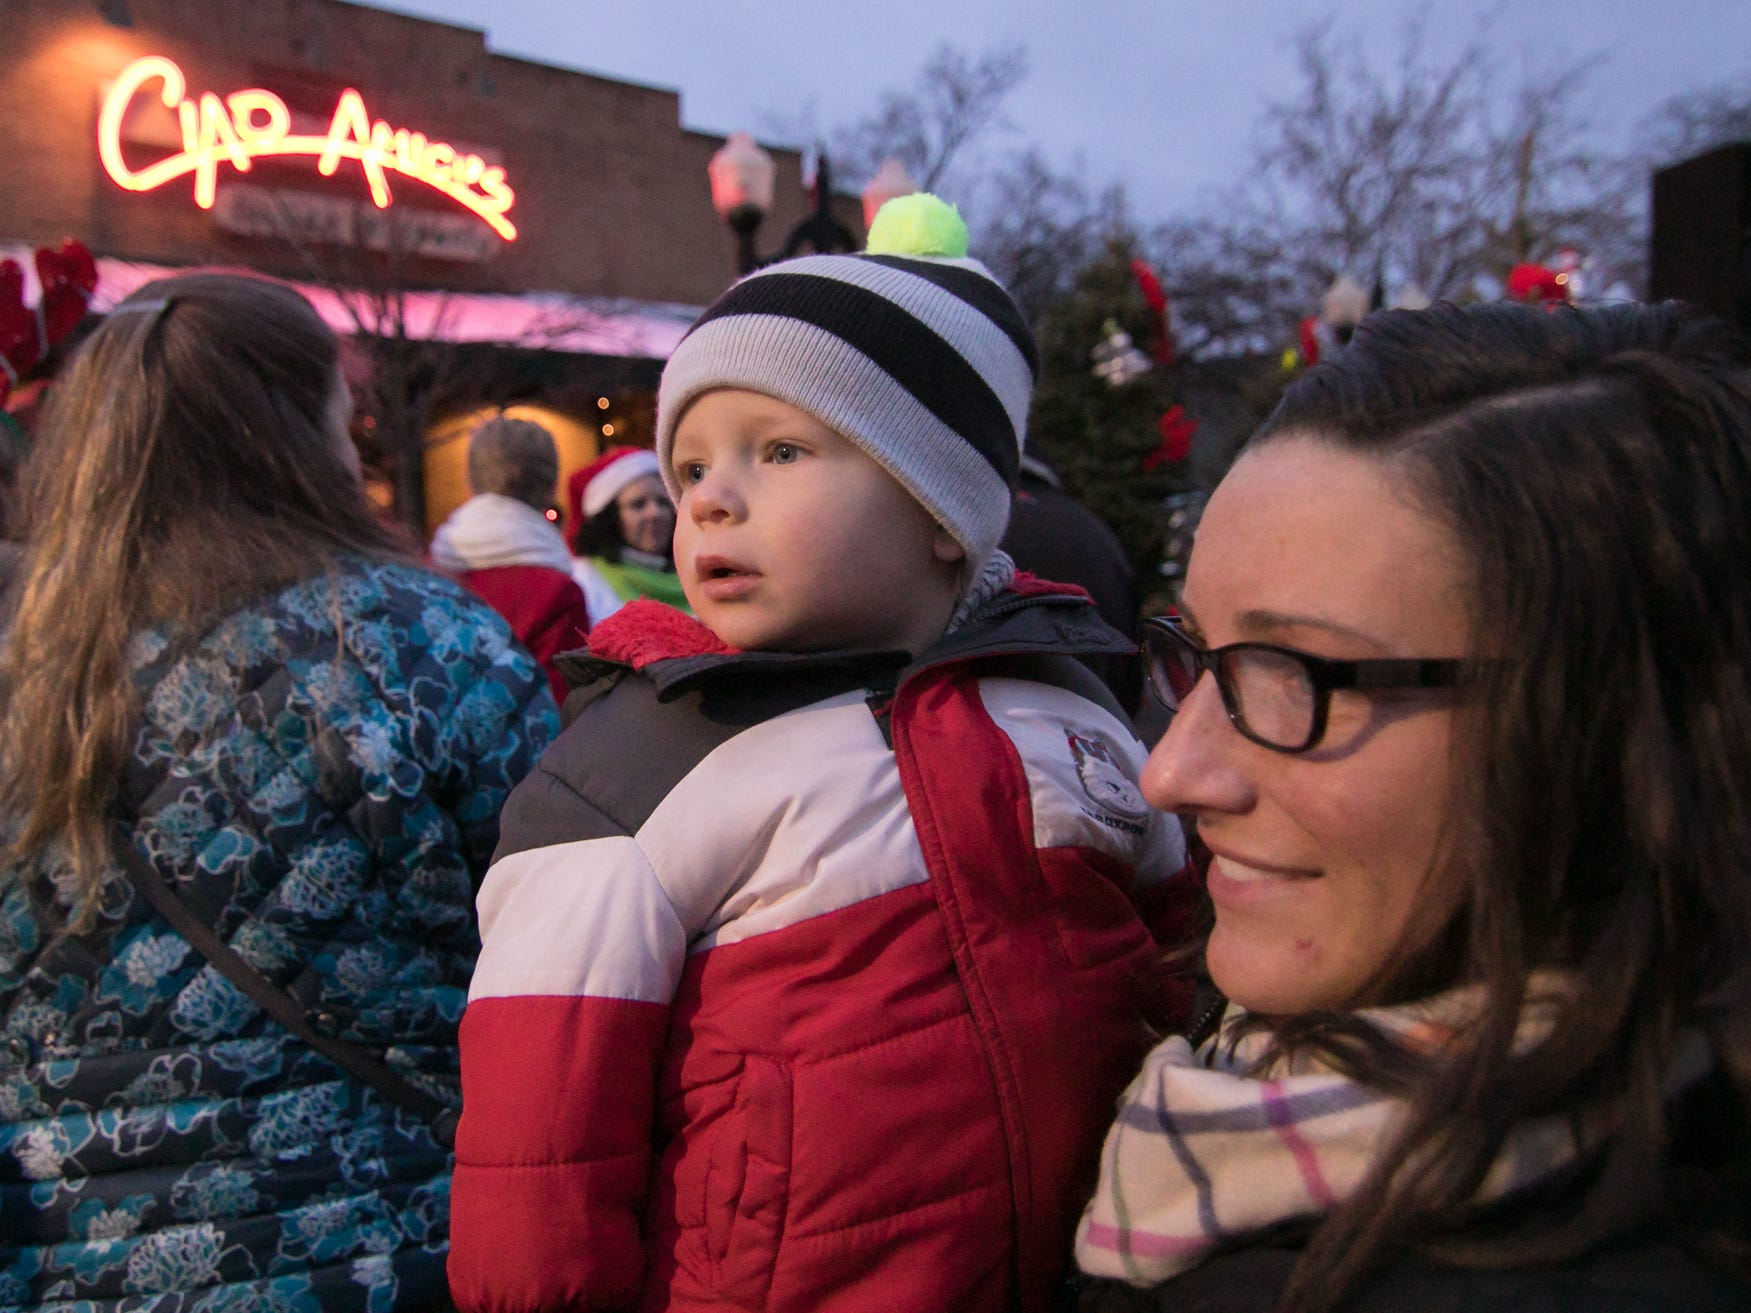 19-month-old Jude Pearson, held by friend Noelle Mancuso, watches the minature train with fascination Saturday, Nov. 17, 2018 at the Holiday Glow.